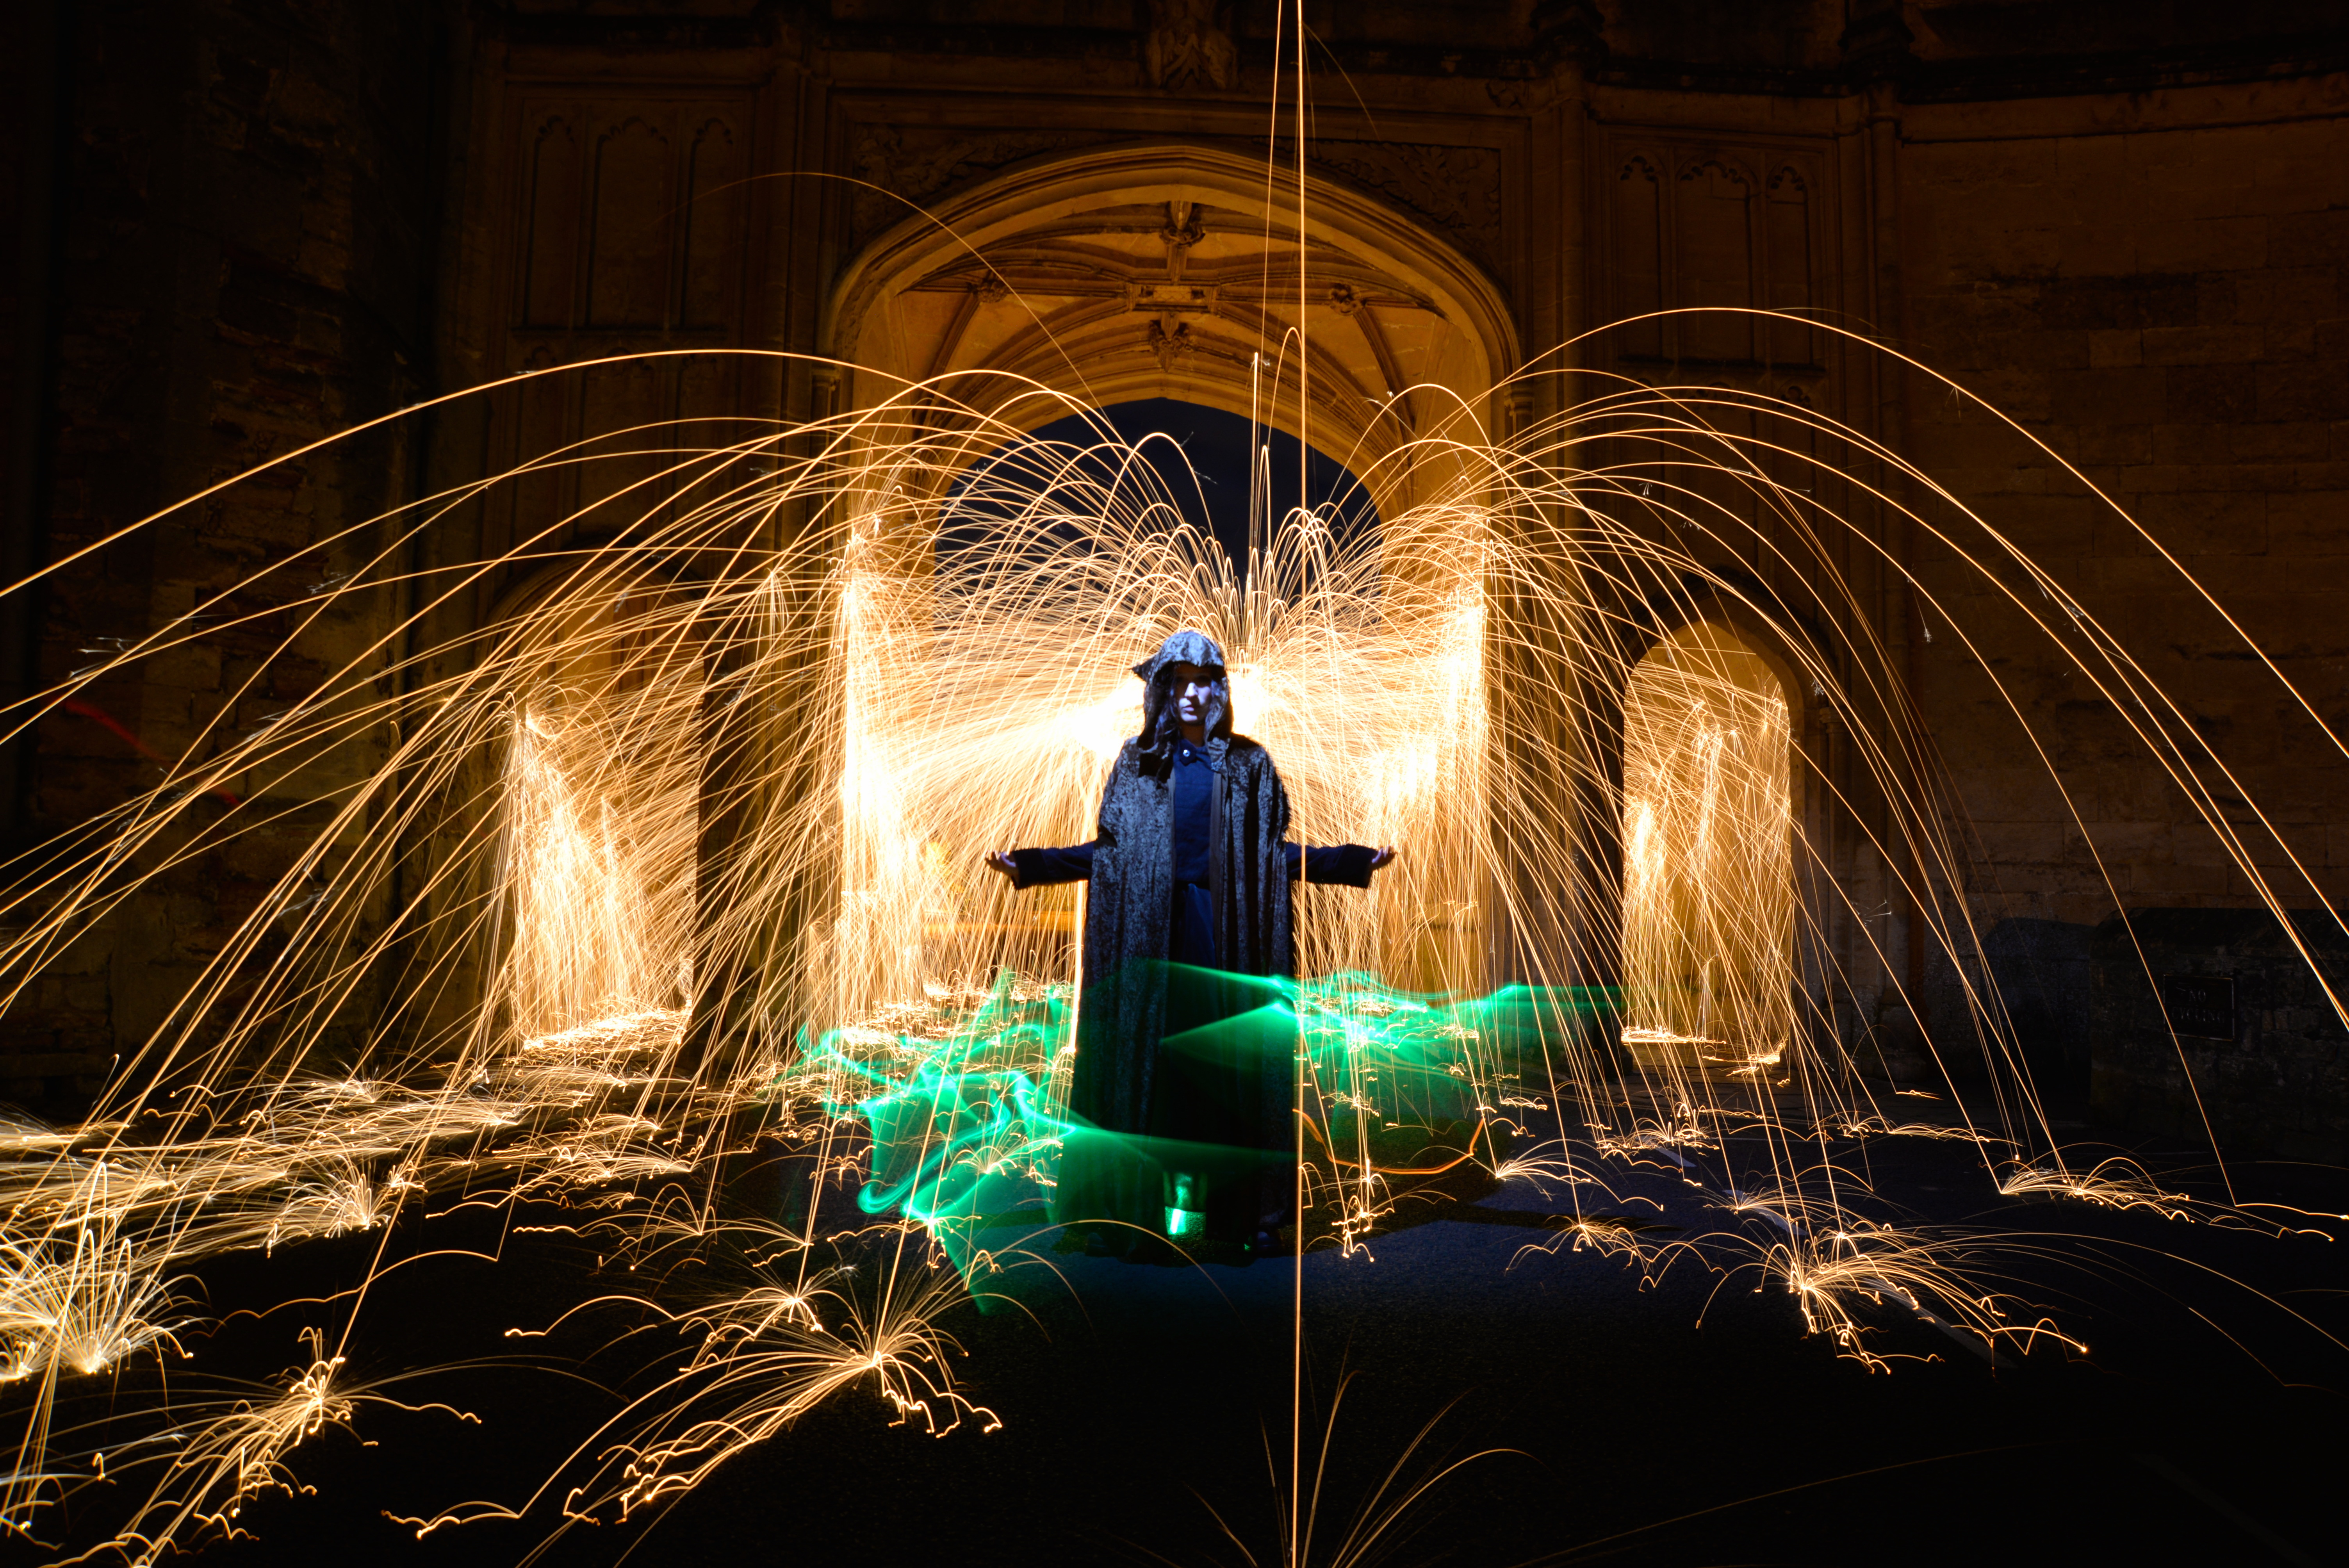 cloaked steel wool spinning light painting at wells cathedral.jpeg